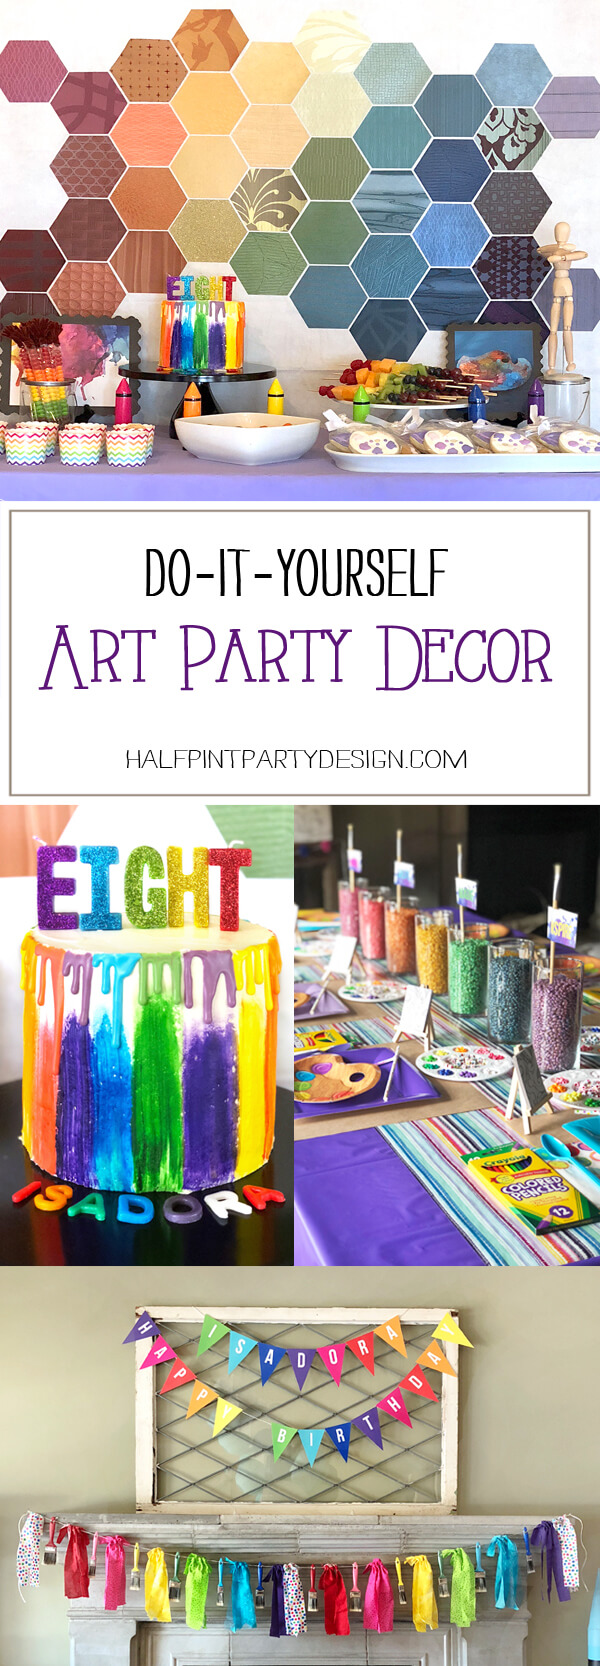 Pinterest collage of 4 di it yourself art party decoration ideas: backdrop, cake letters, centerpiece, and garlands